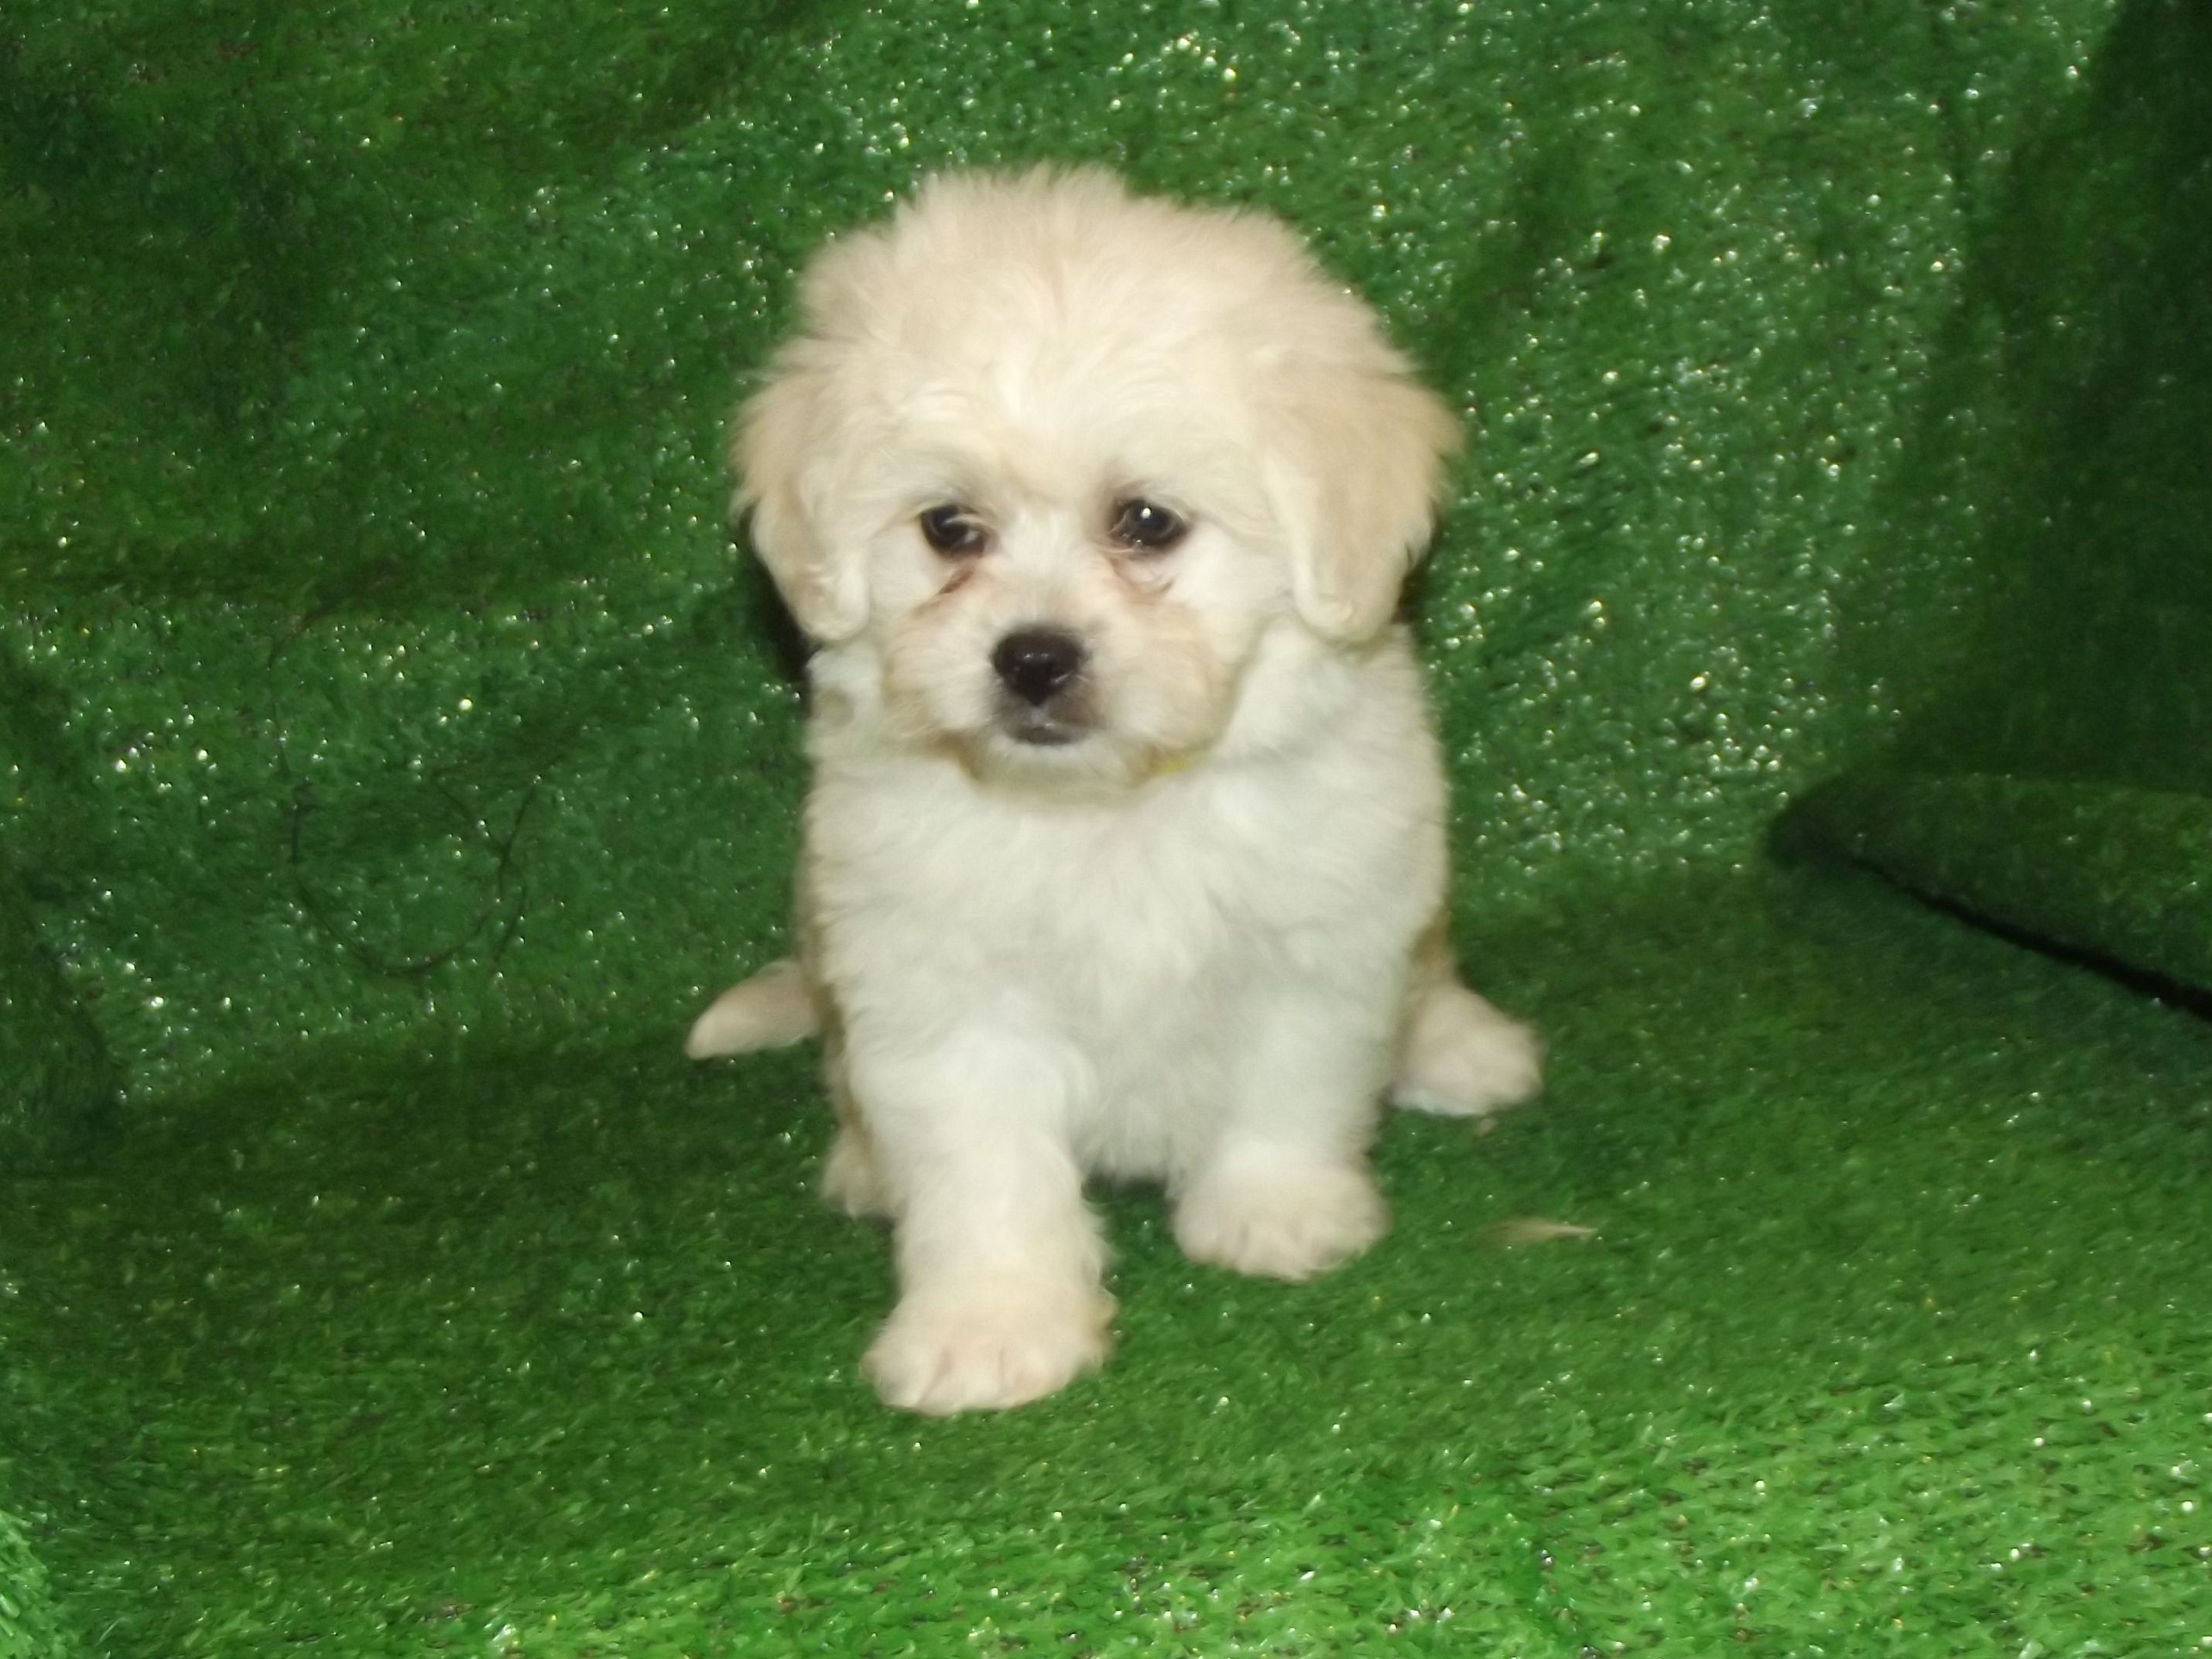 Pekechon Pekingese X Bichon Frise This Adorable Little Puppy Has A Big Personality With A Small Frame They Are Minimal Puppies Little Puppies Bichon Frise